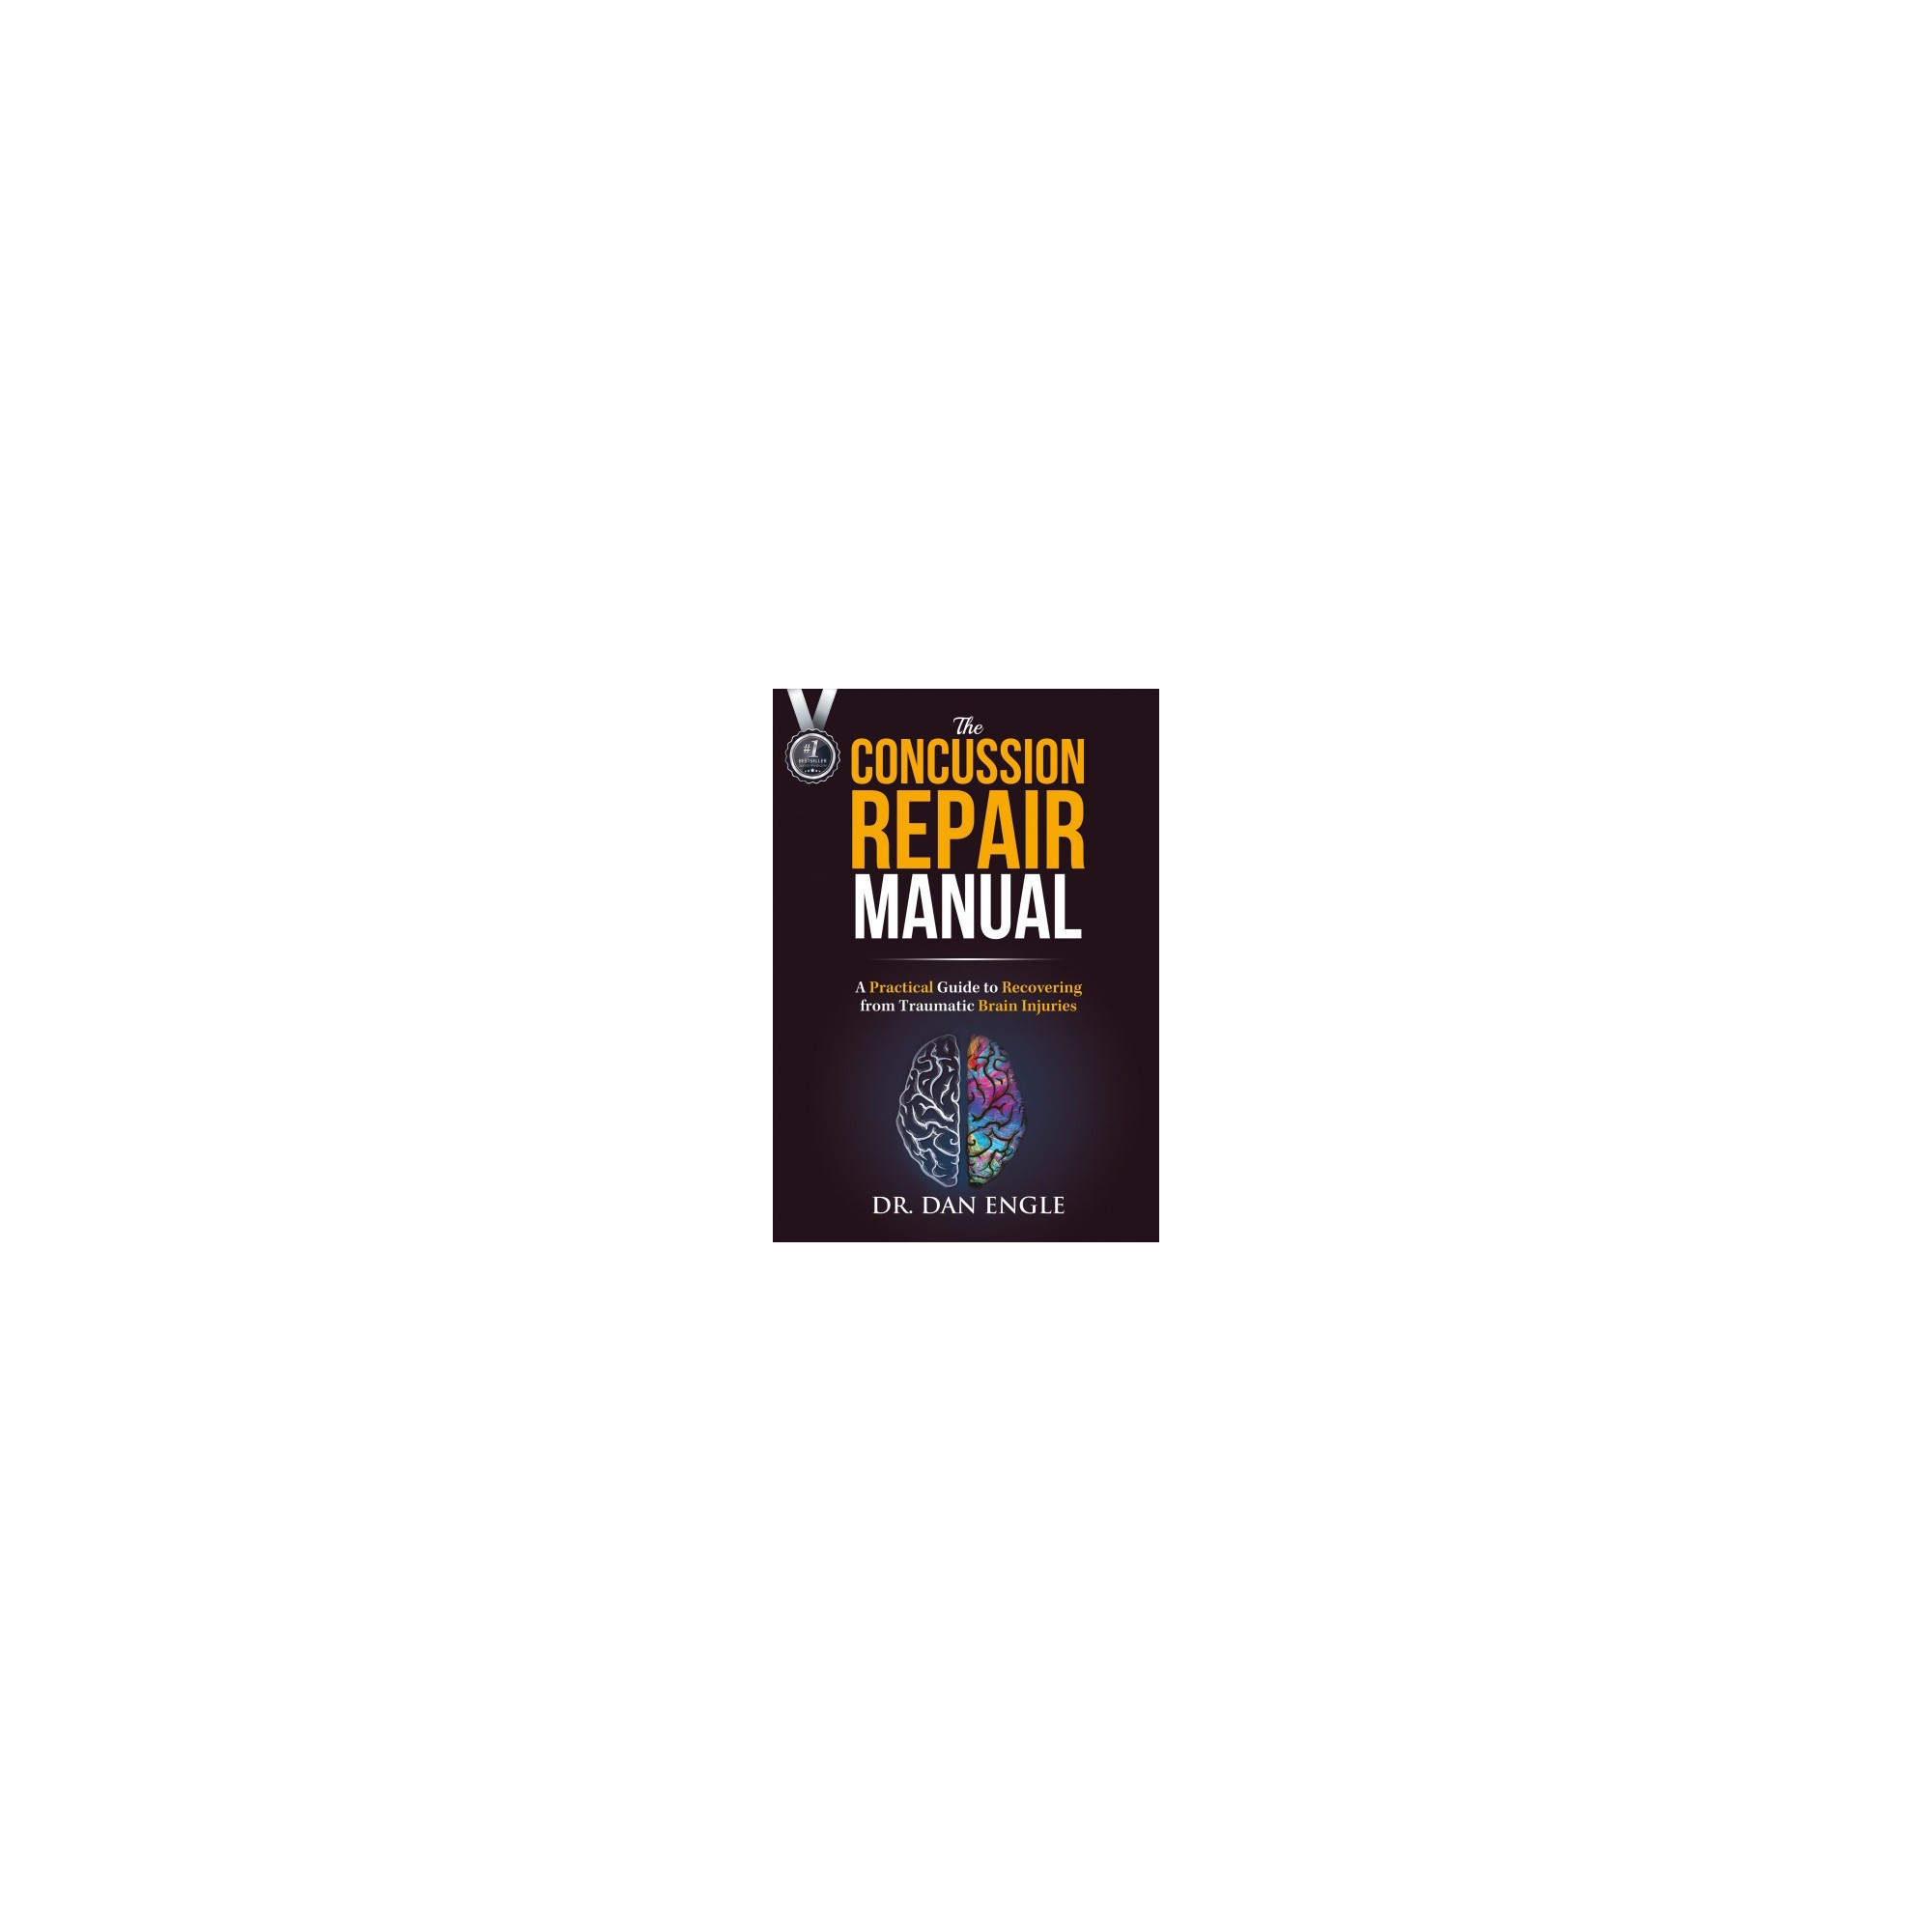 Concussion repair manual a practical guide to recovering from concussion repair manual a practical guide to recovering from traumatic brain injuries paperback fandeluxe Images